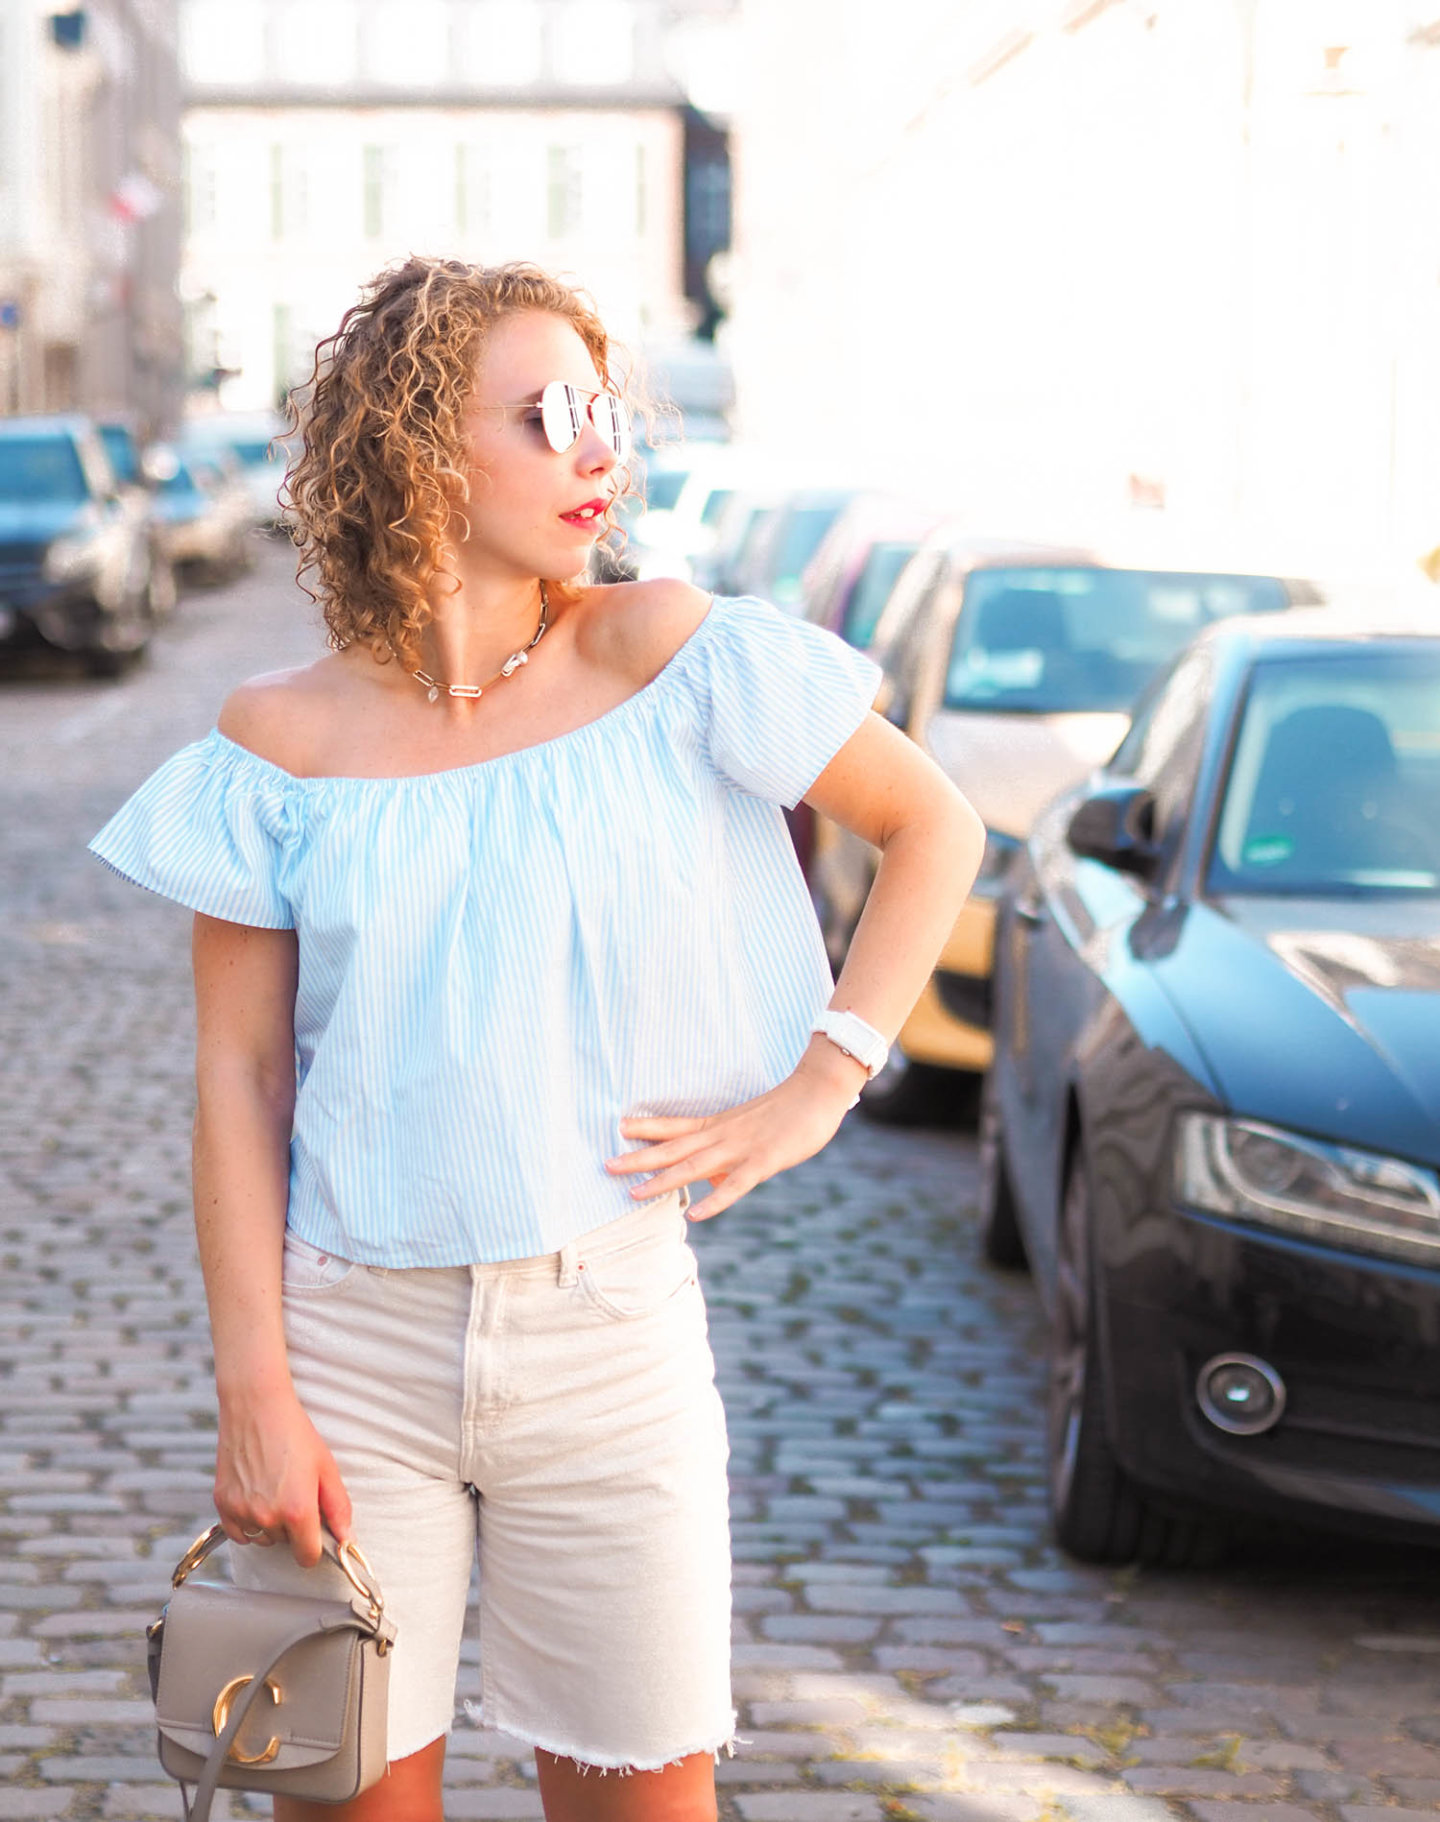 off-shoulder-shirt und jeans-shorts